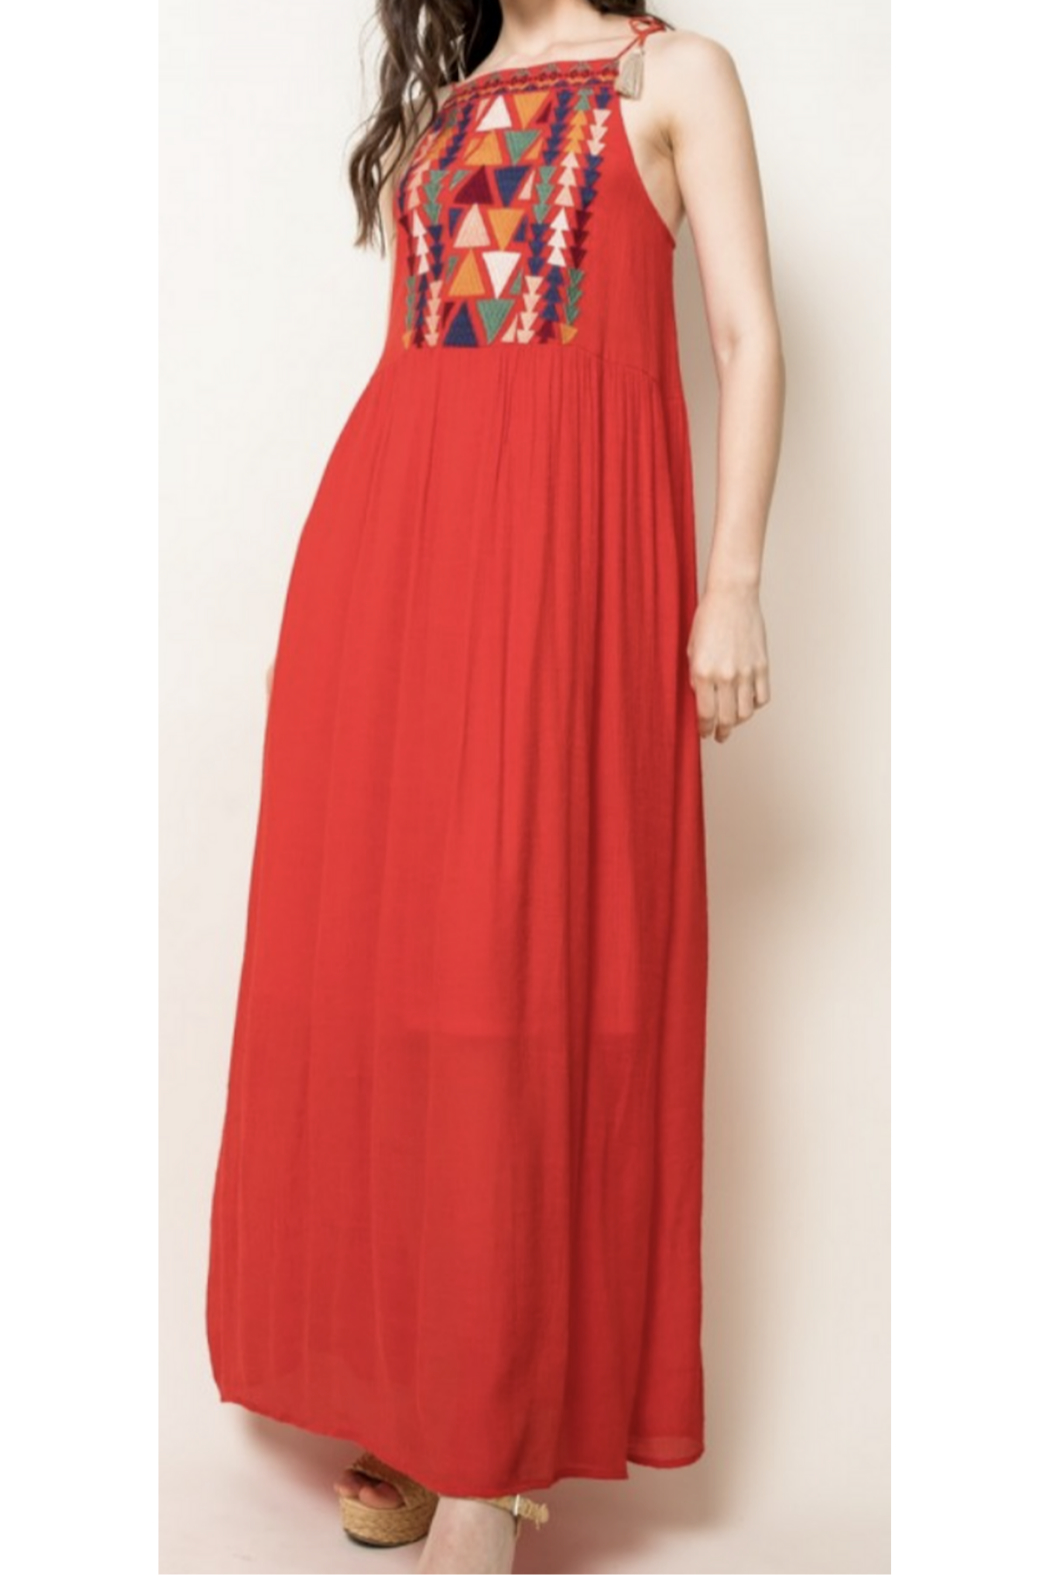 THML Clothing Embroidered Red Maxi - Main Image